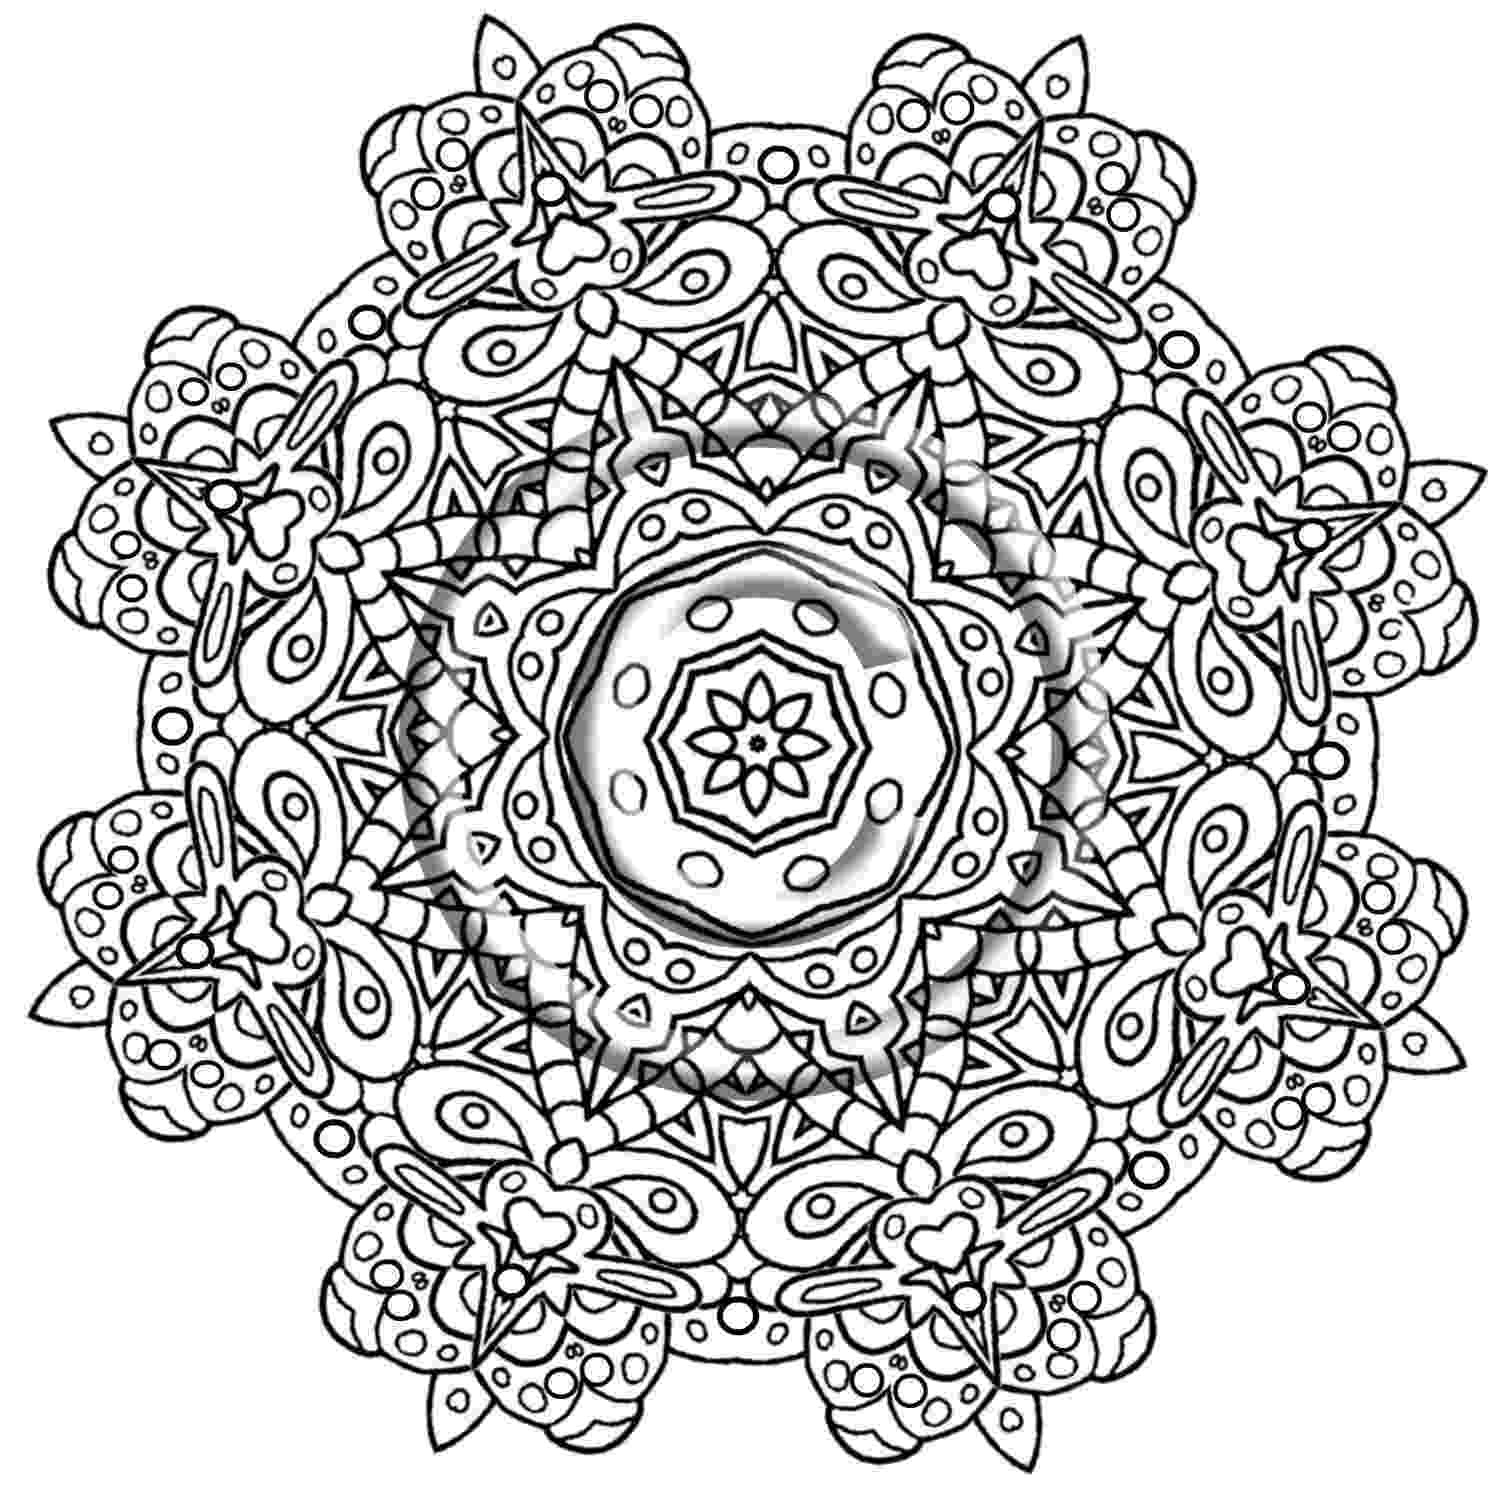 intricate coloring pages intricate flower coloring pages coloring home coloring intricate pages